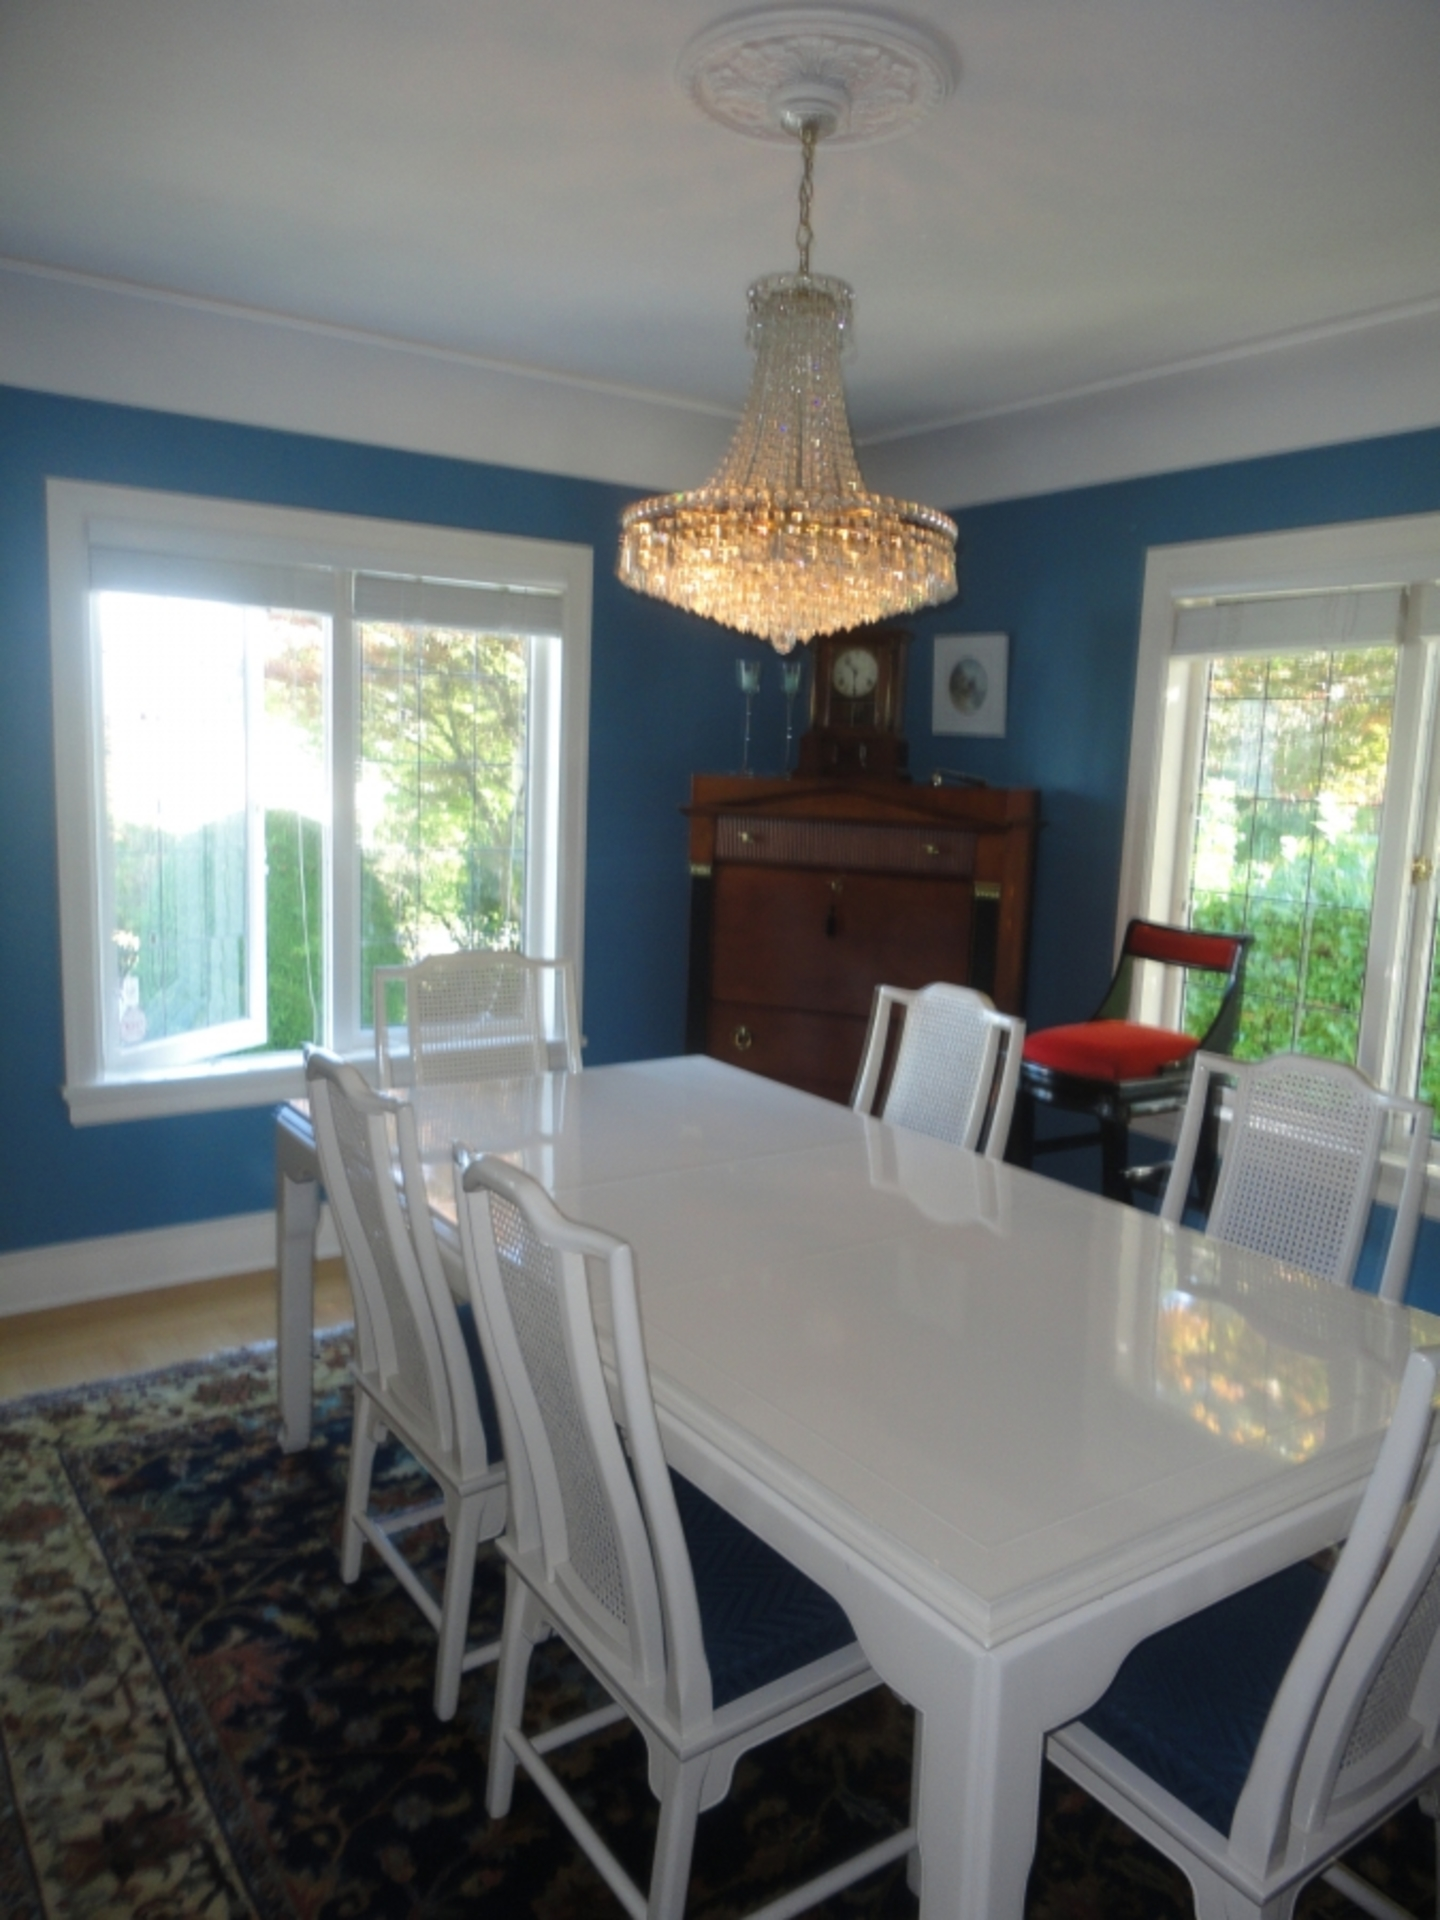 Dining Room at Address Upon Request, South Cambie, Vancouver West